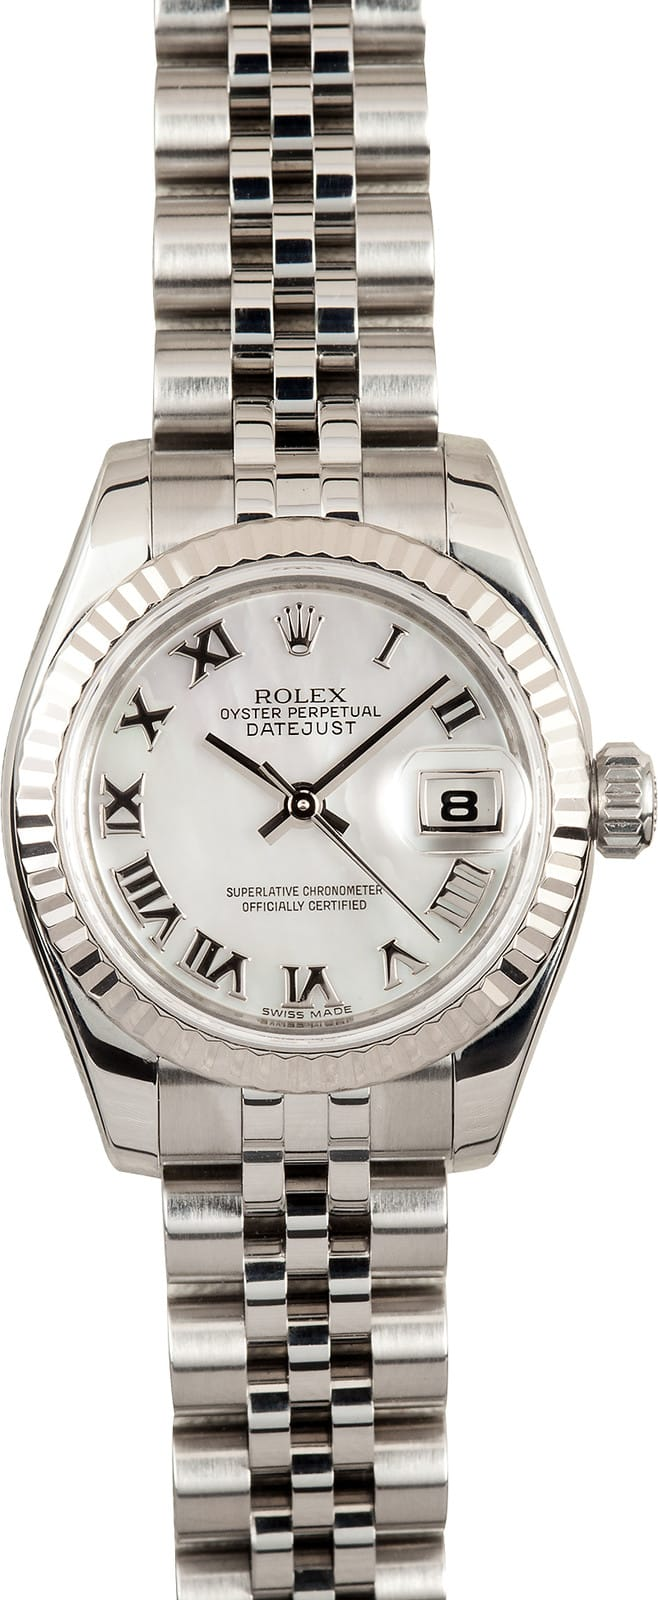 Rolex Unworn Datejust 36mm Automatic in Steel with White Gold Fluted Bezel